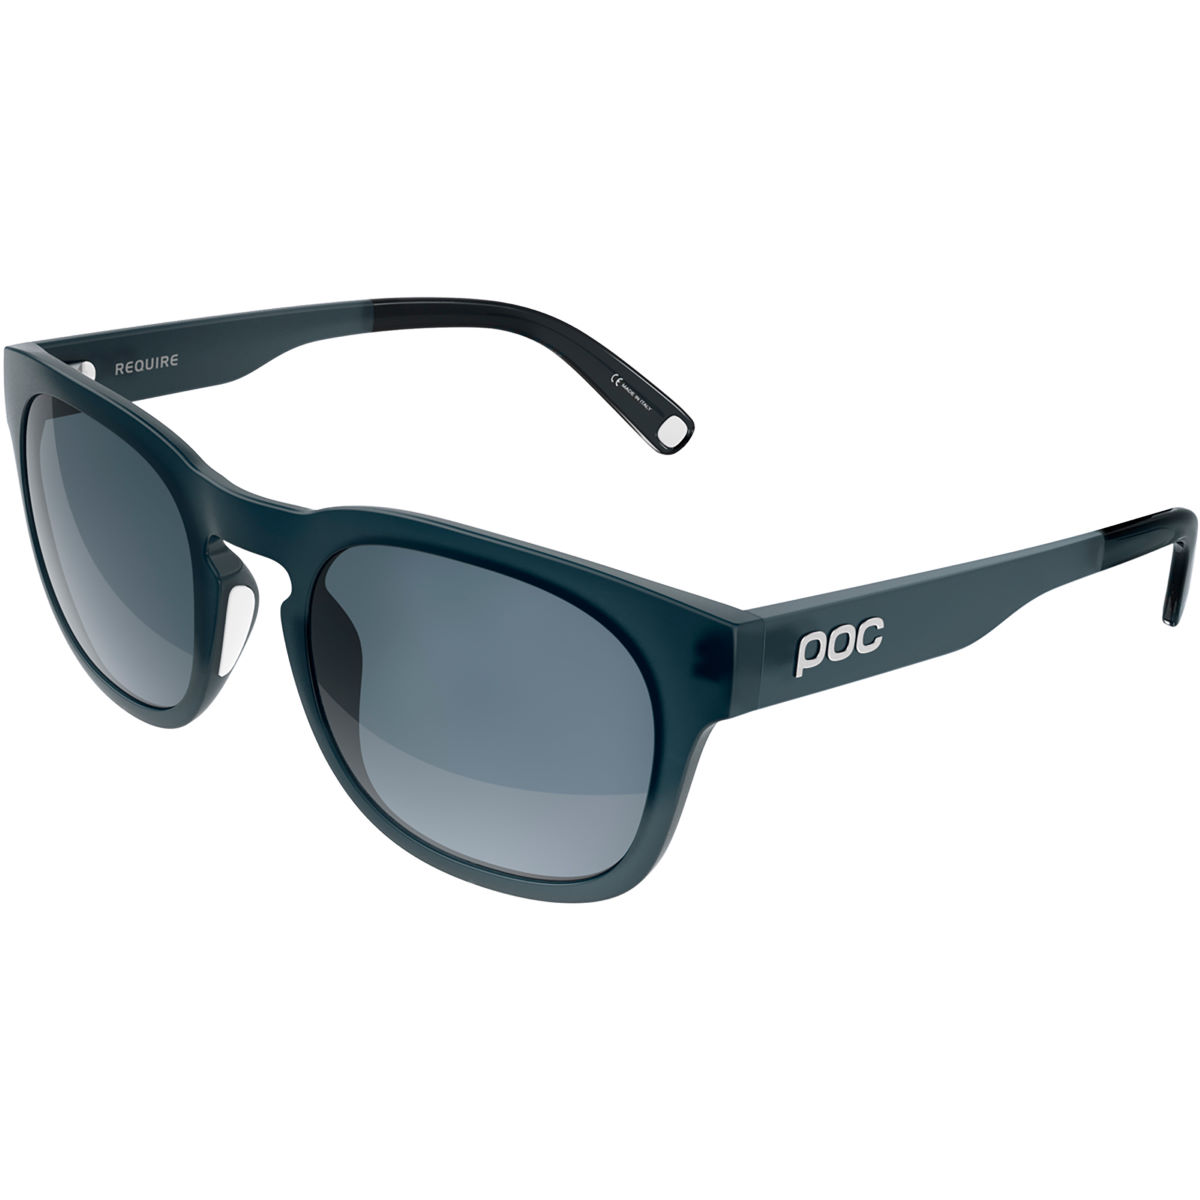 POC Require Sunglasses - Gafas de sol informales